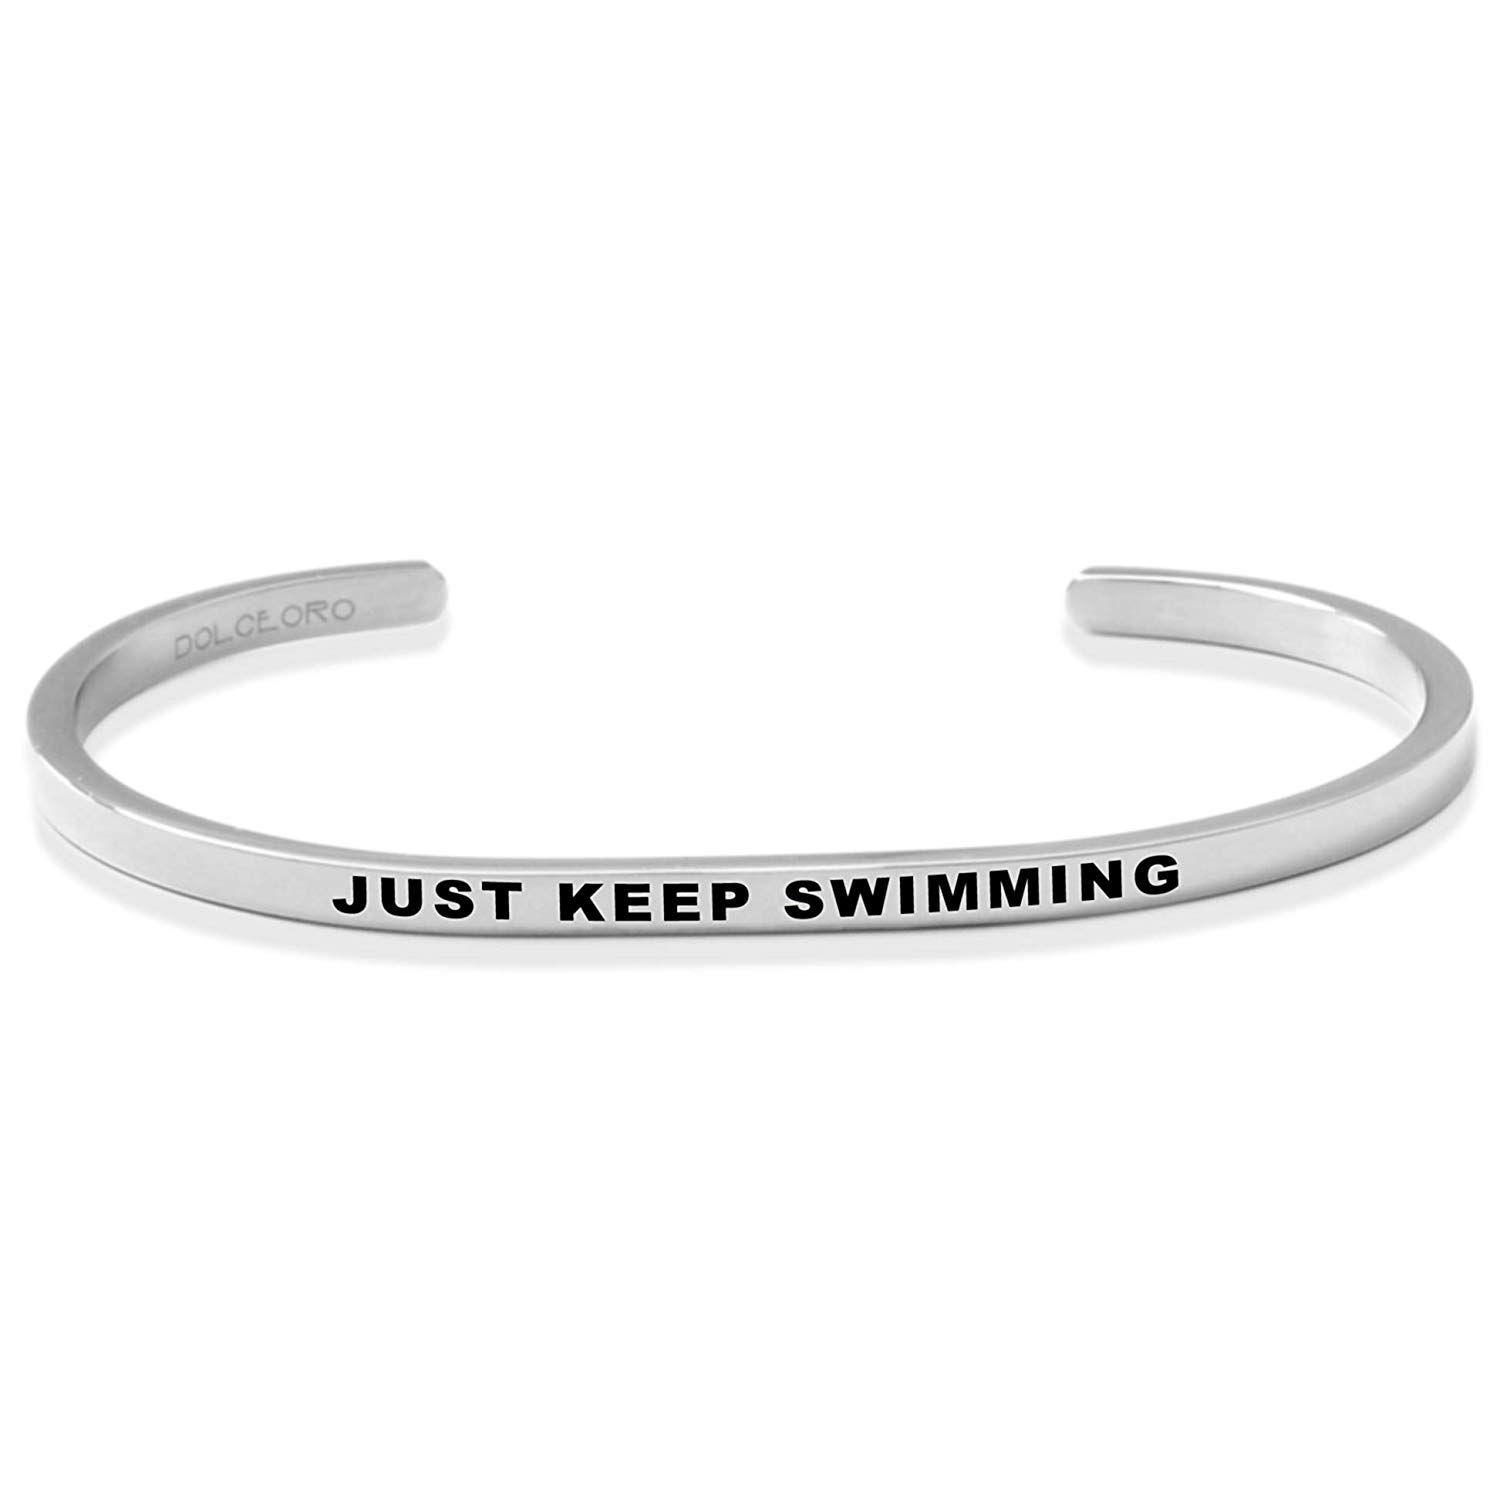 3mm Wide Shiny 316L Surgical Stainless Steel Inspirational Mantra Cuff Band Bracelet Jewelry Dolceoro JUST Dance